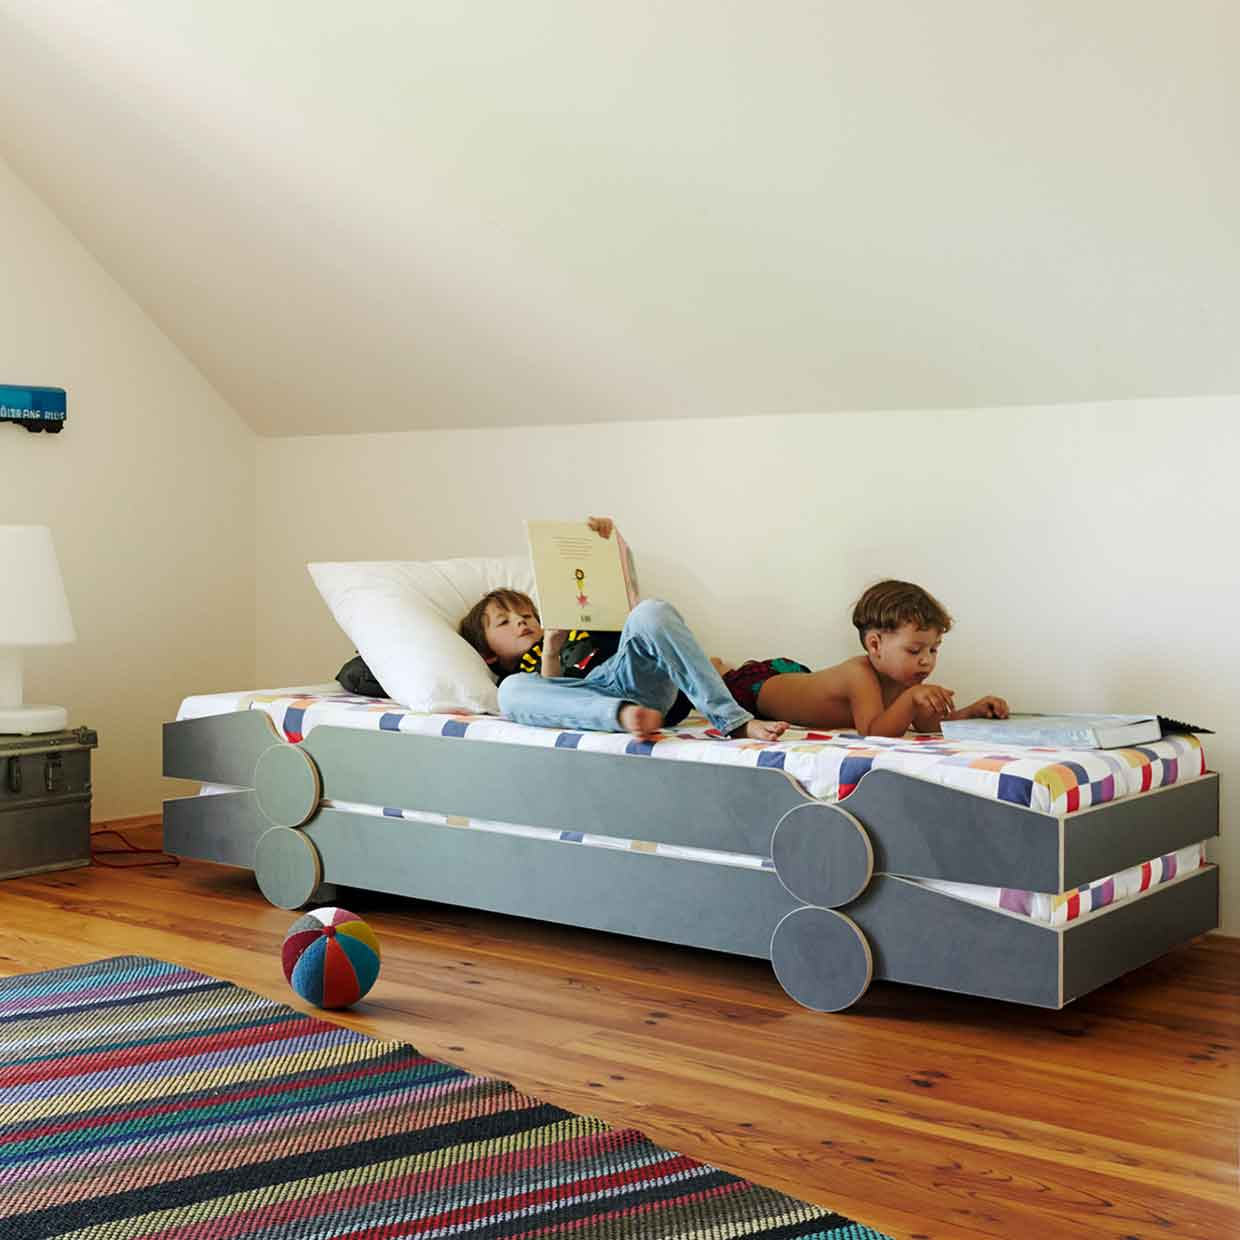 Kids Furniture Speedoletto Stackable Bed For Children By De Breuyn Möbel 2